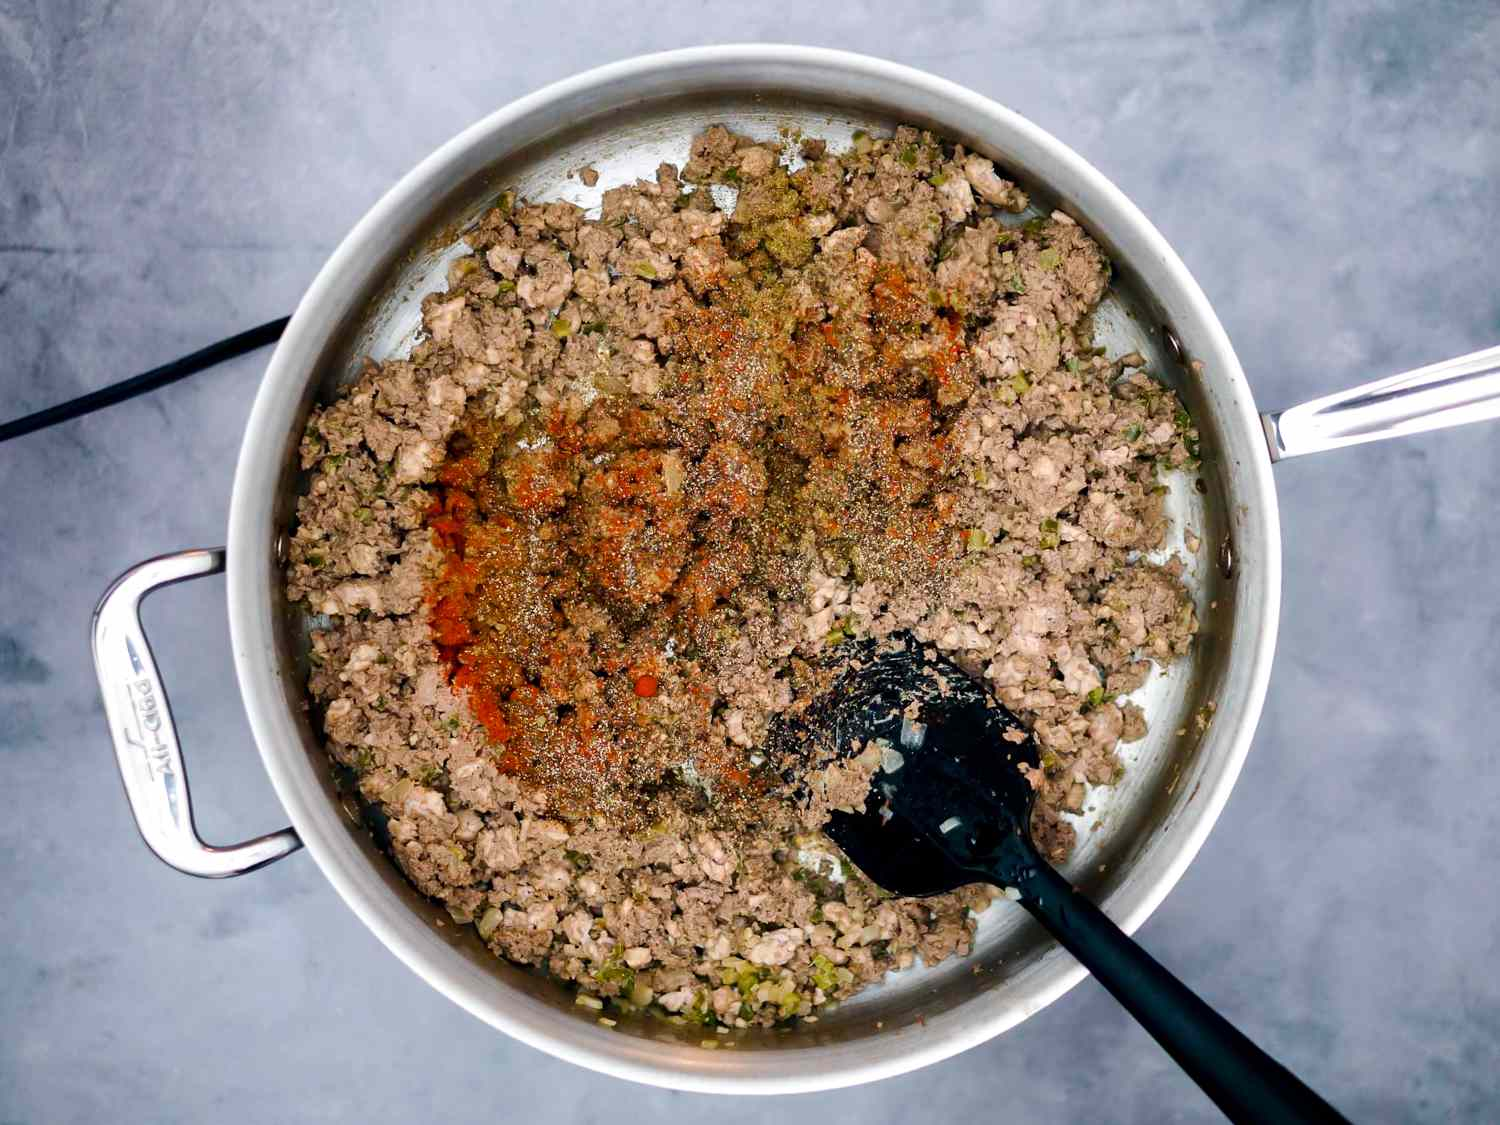 ground meat and vegetable mixture returned to skillet with seasoning